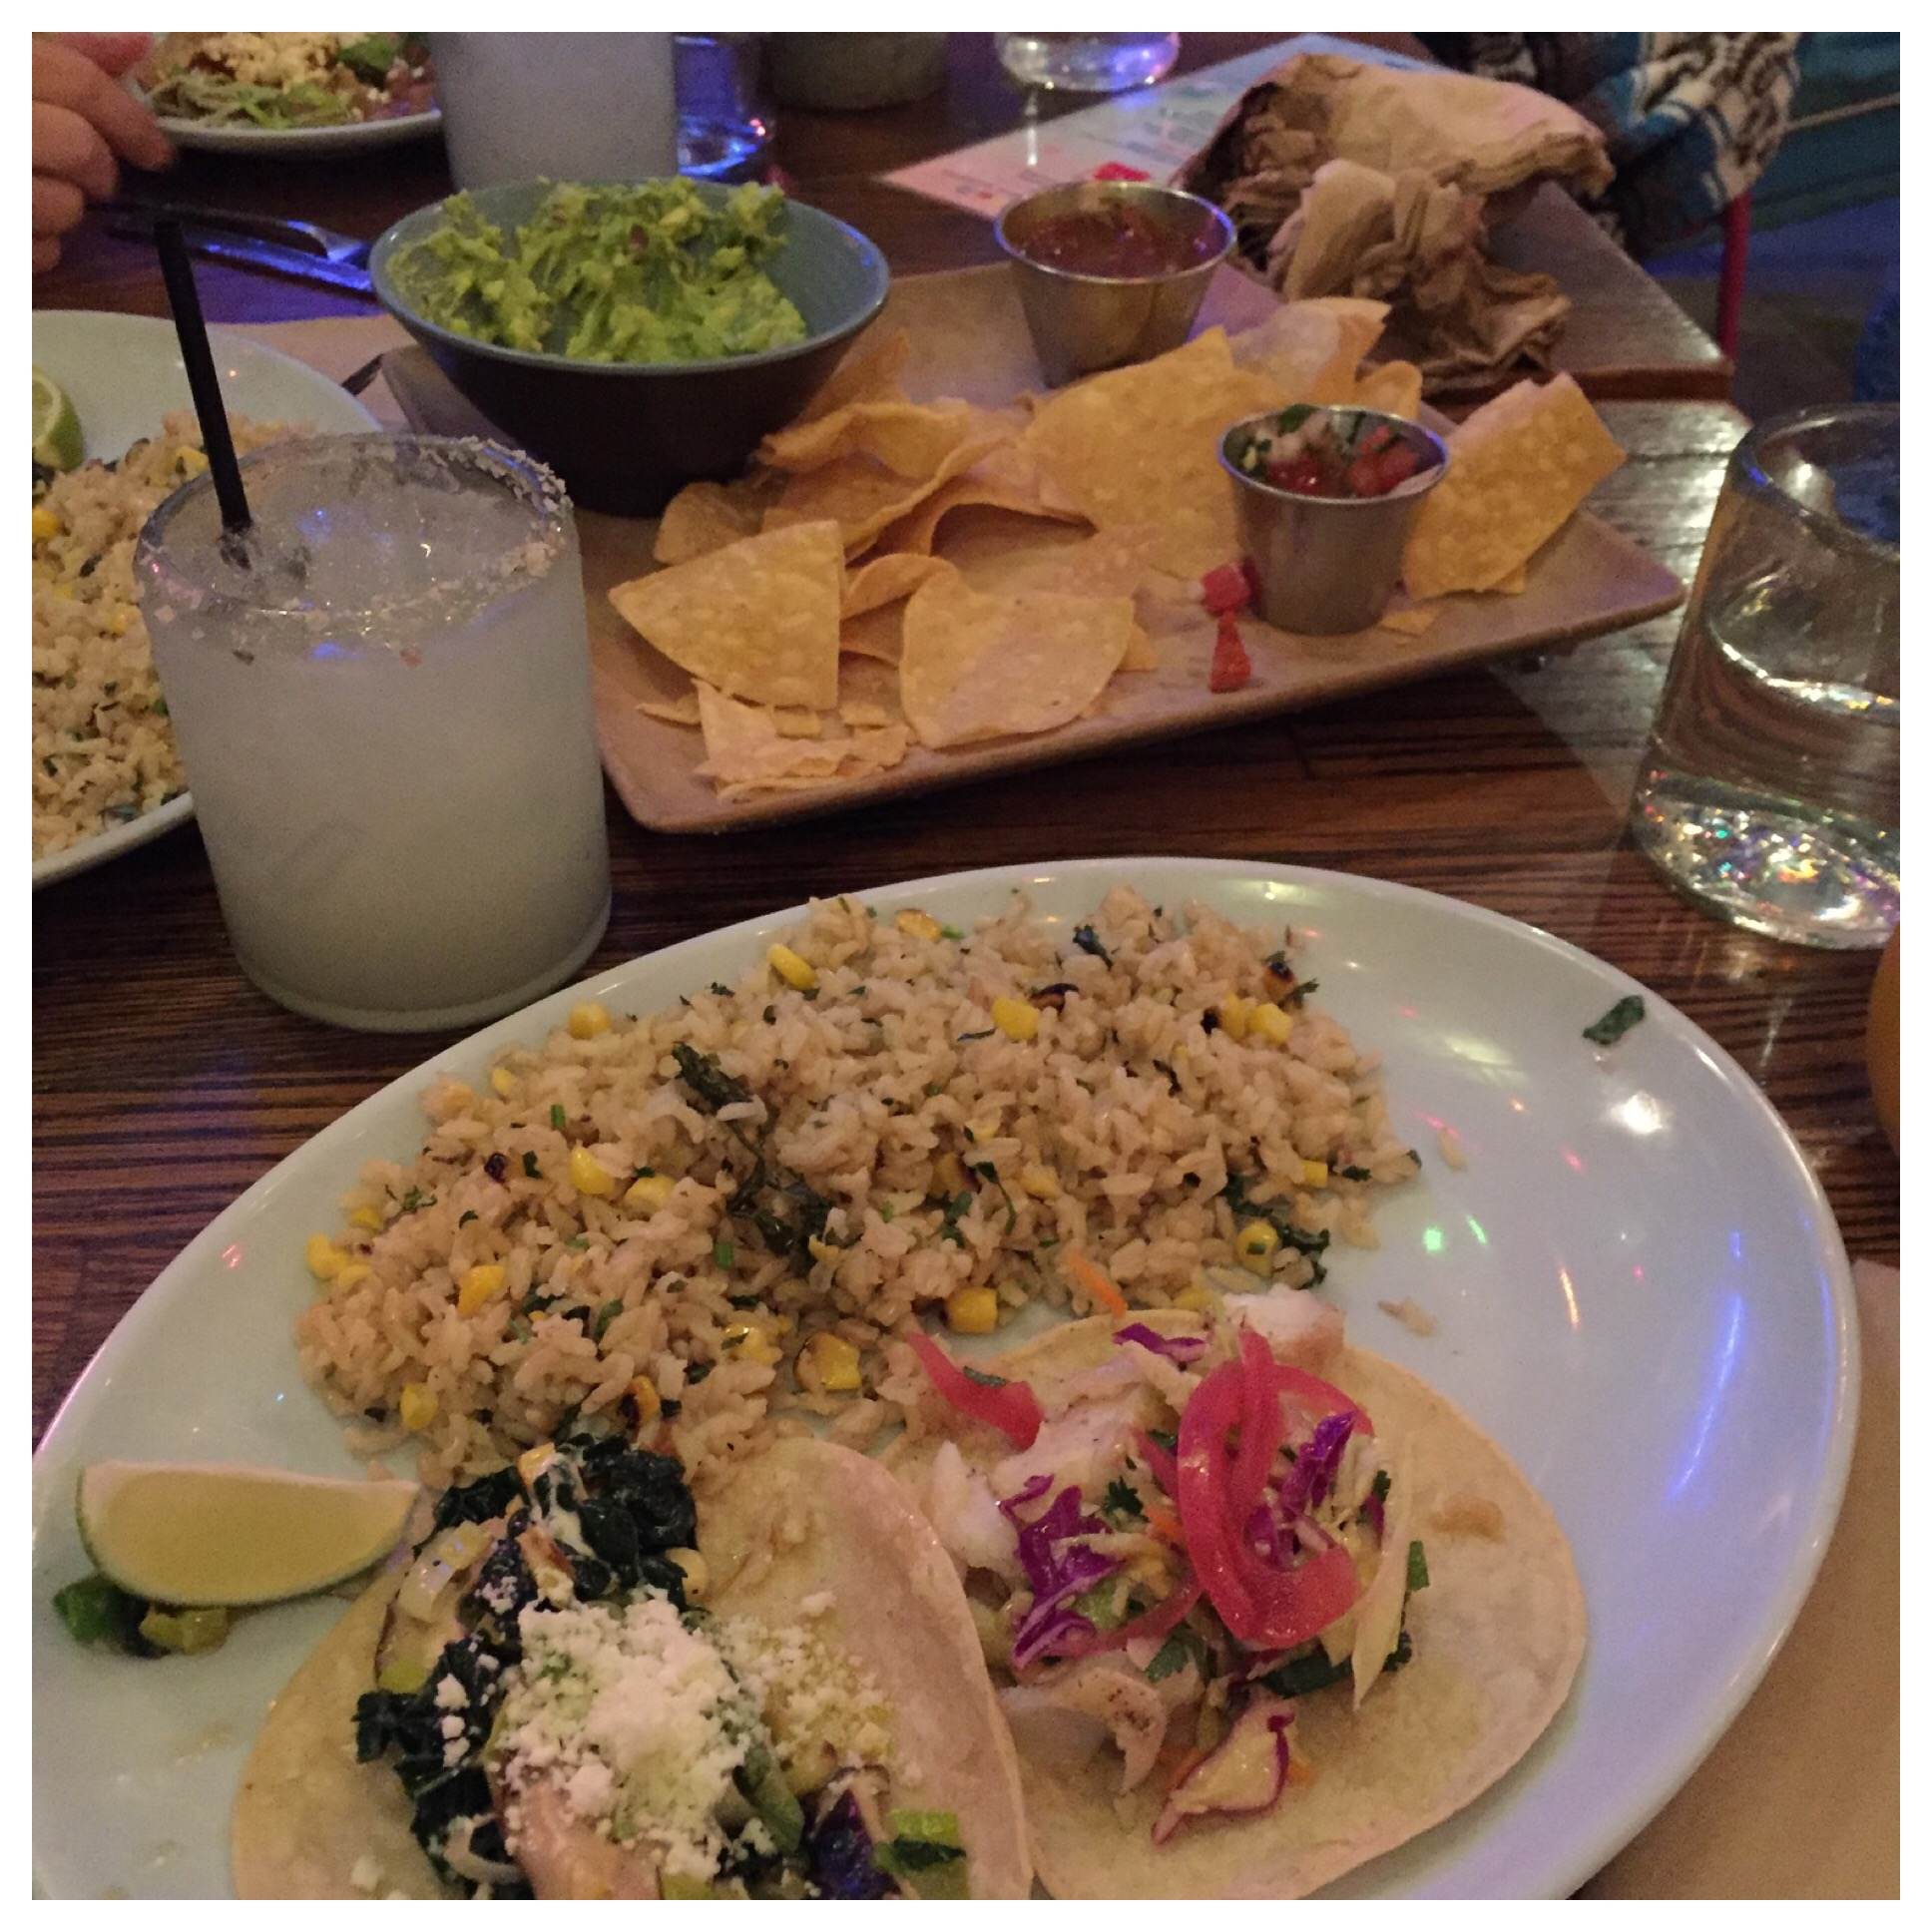 Margarita's for Cheryl and Deidre and the best Sangria I've ever had!! That's a grilled fish taco, a vegetable taco and rice.